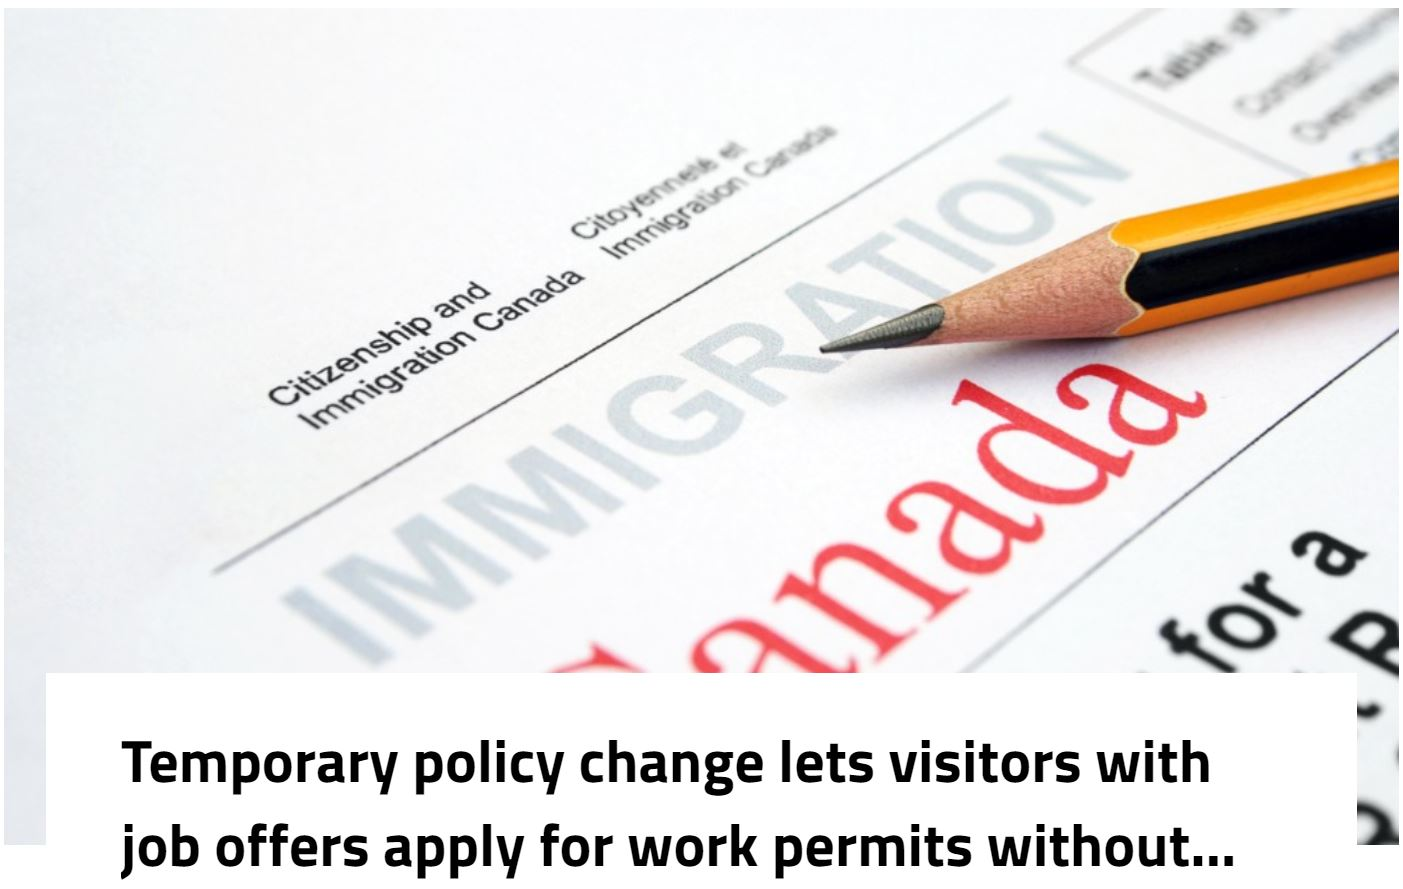 New temporary visa policy change